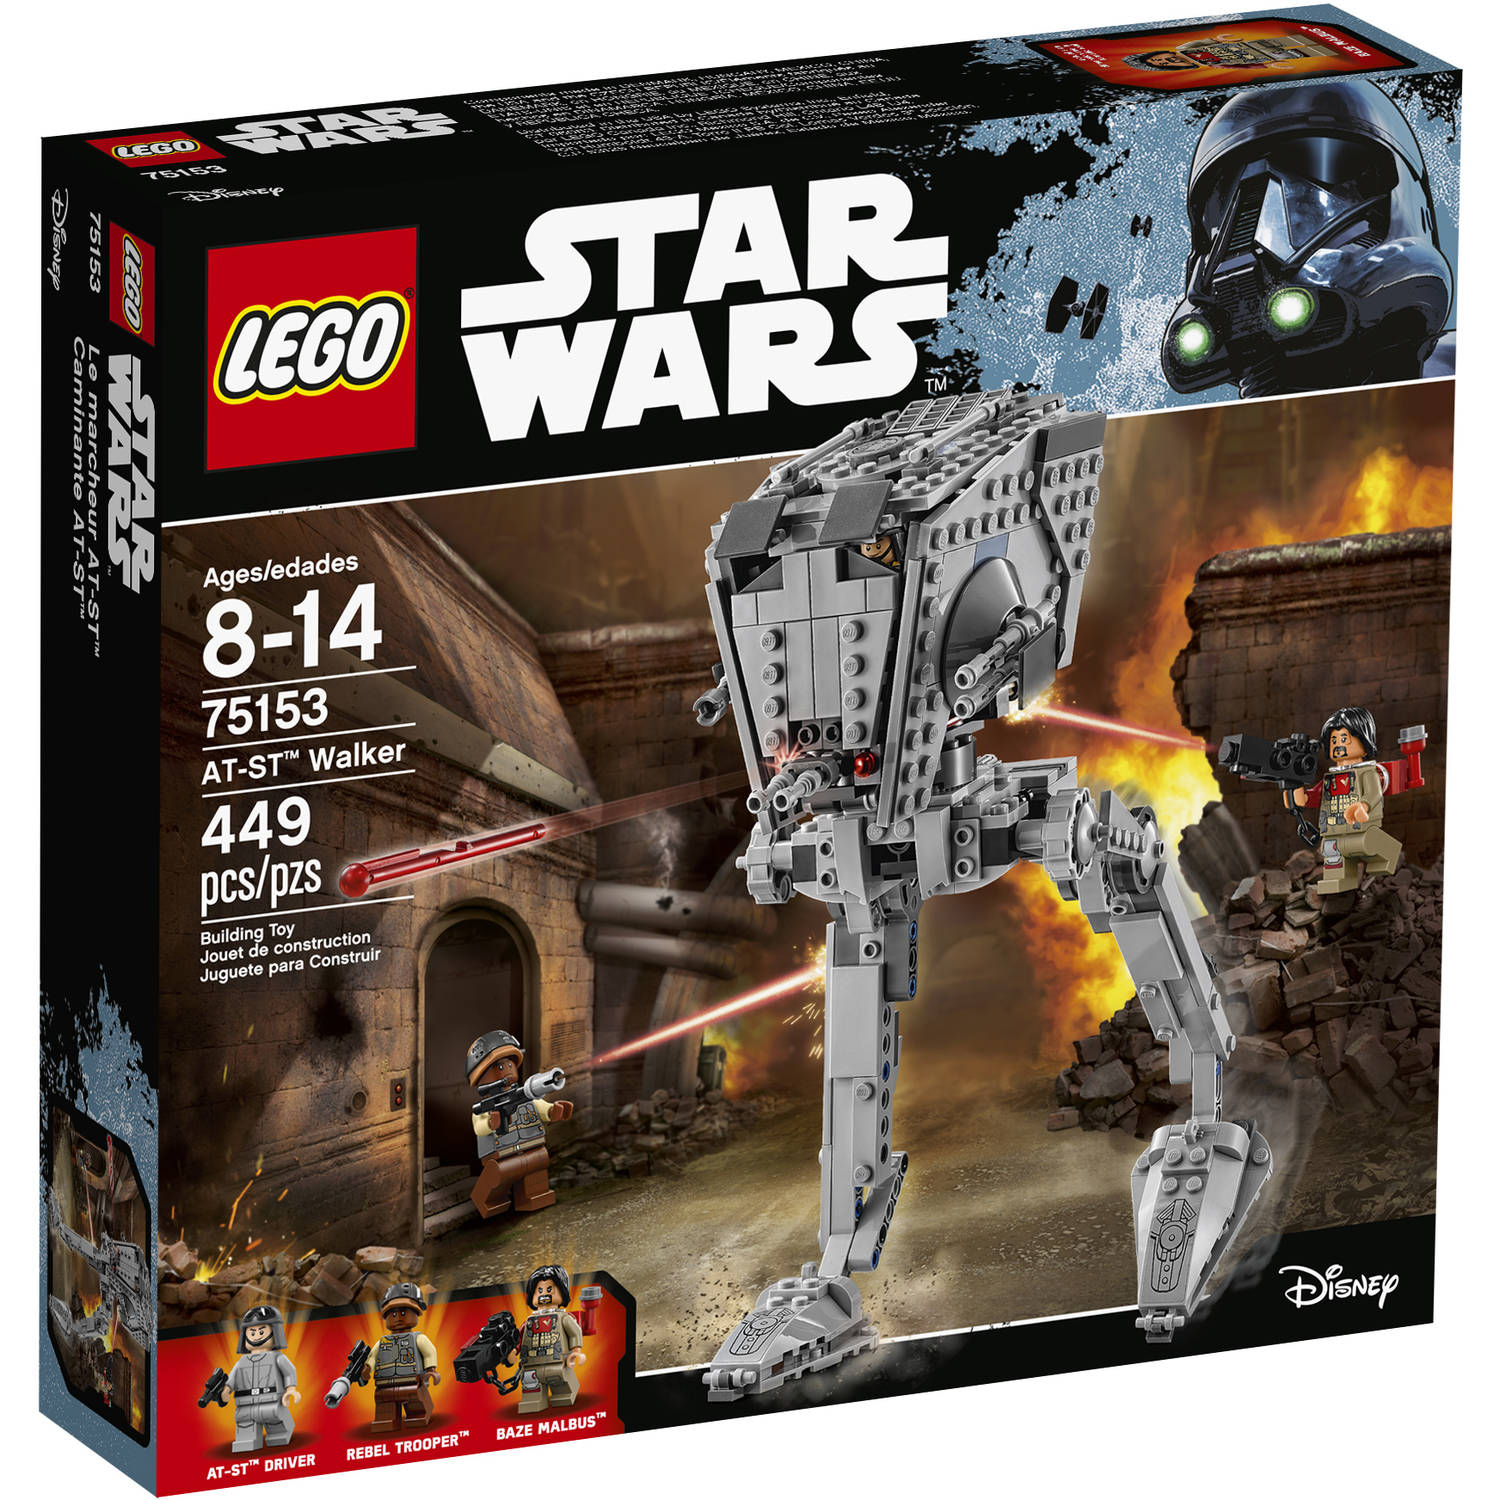 lego star wars at-st walker 75153 - walmart